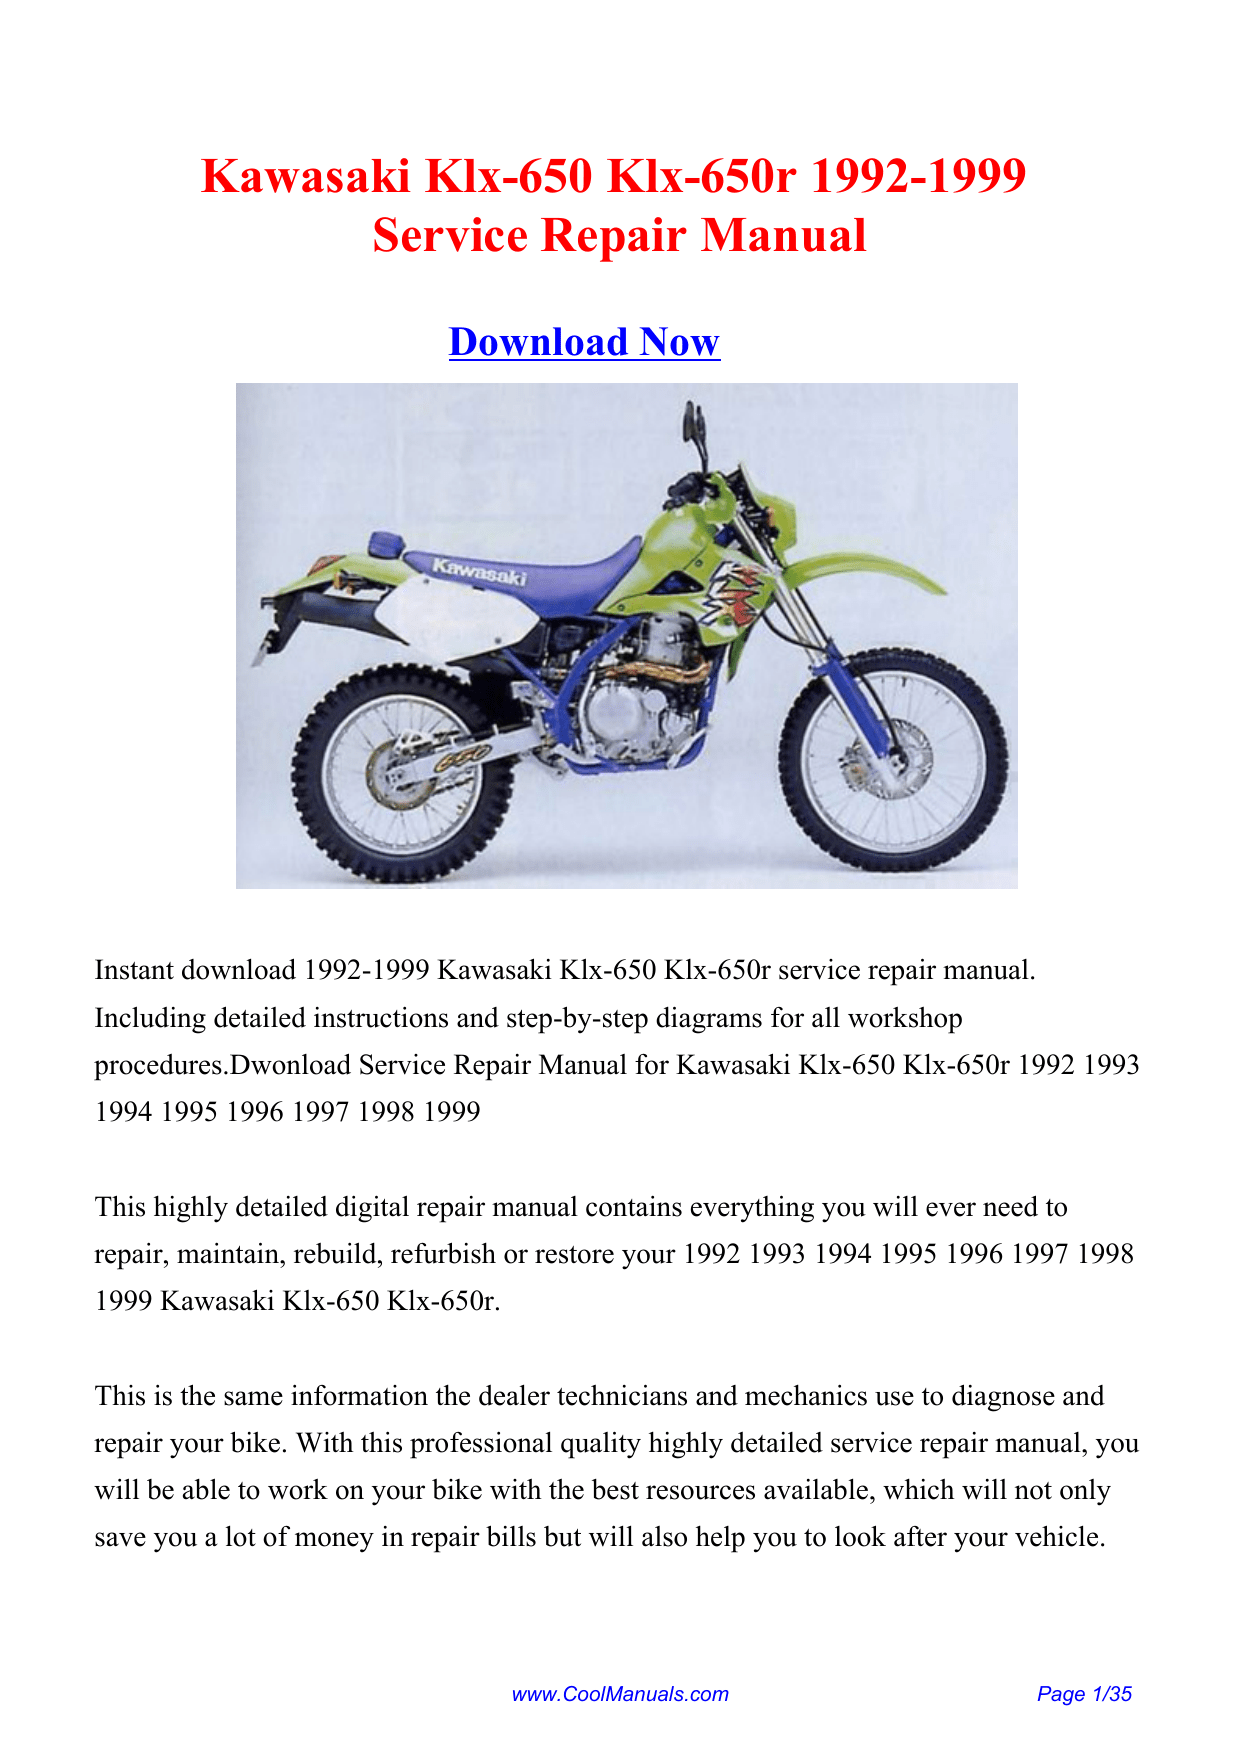 hight resolution of kawasaki klx 650 klx 650r 1992